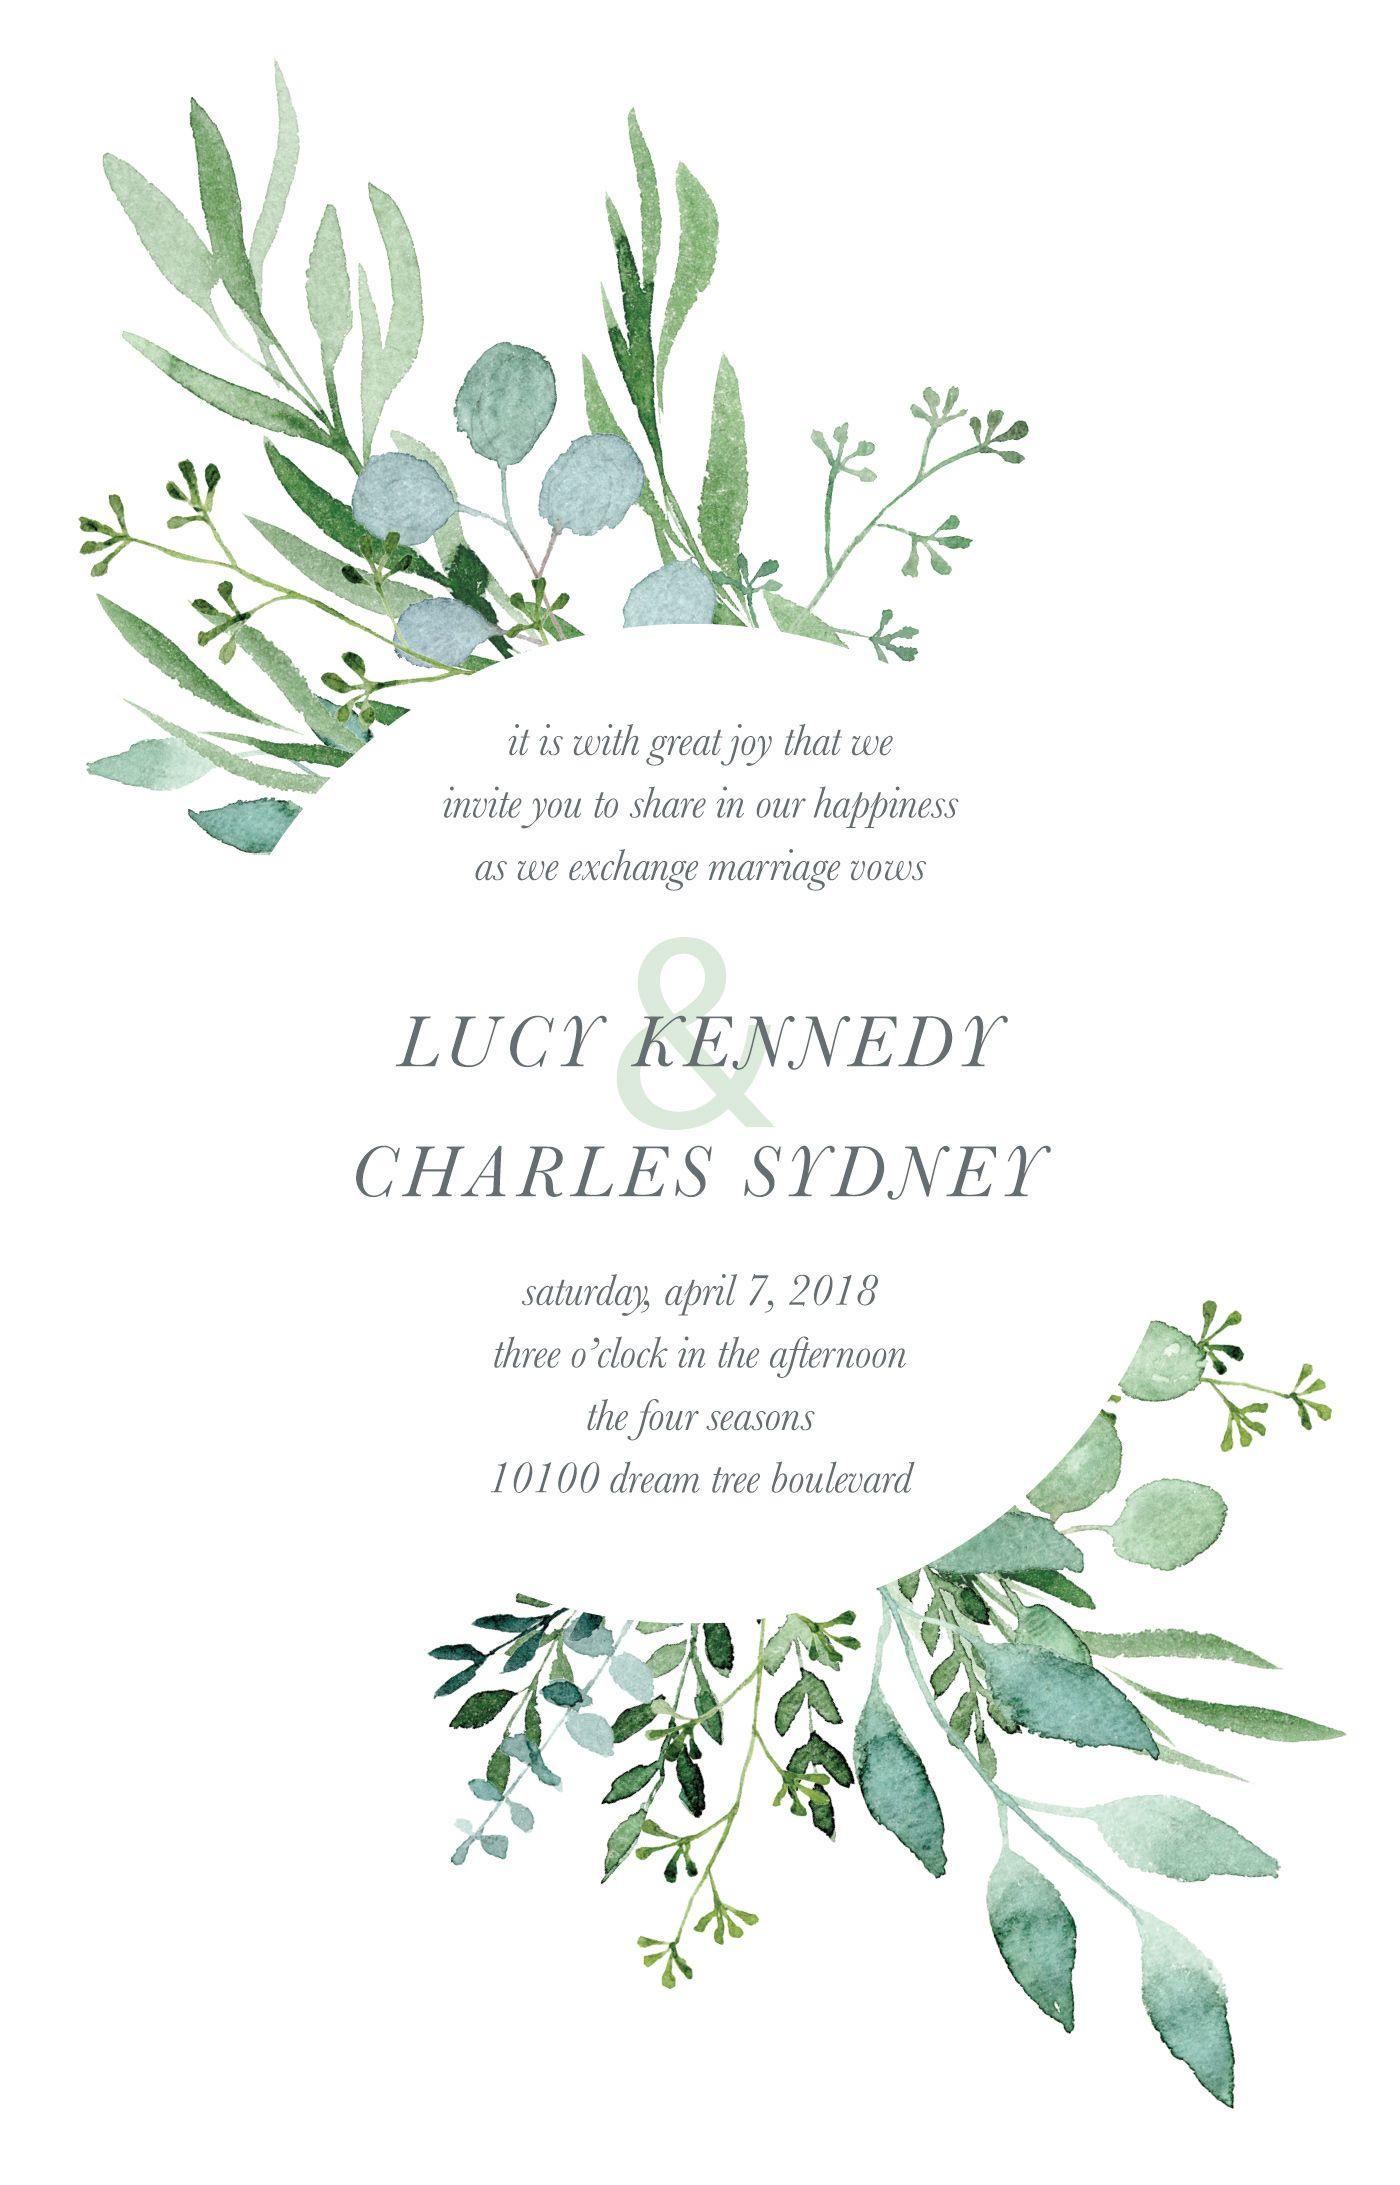 Watercolor Greenery Invitation Weddings By Vistaprint In 2020 Country Wedding Invitations Custom Wedding Invitations Wedding Invitation Templates